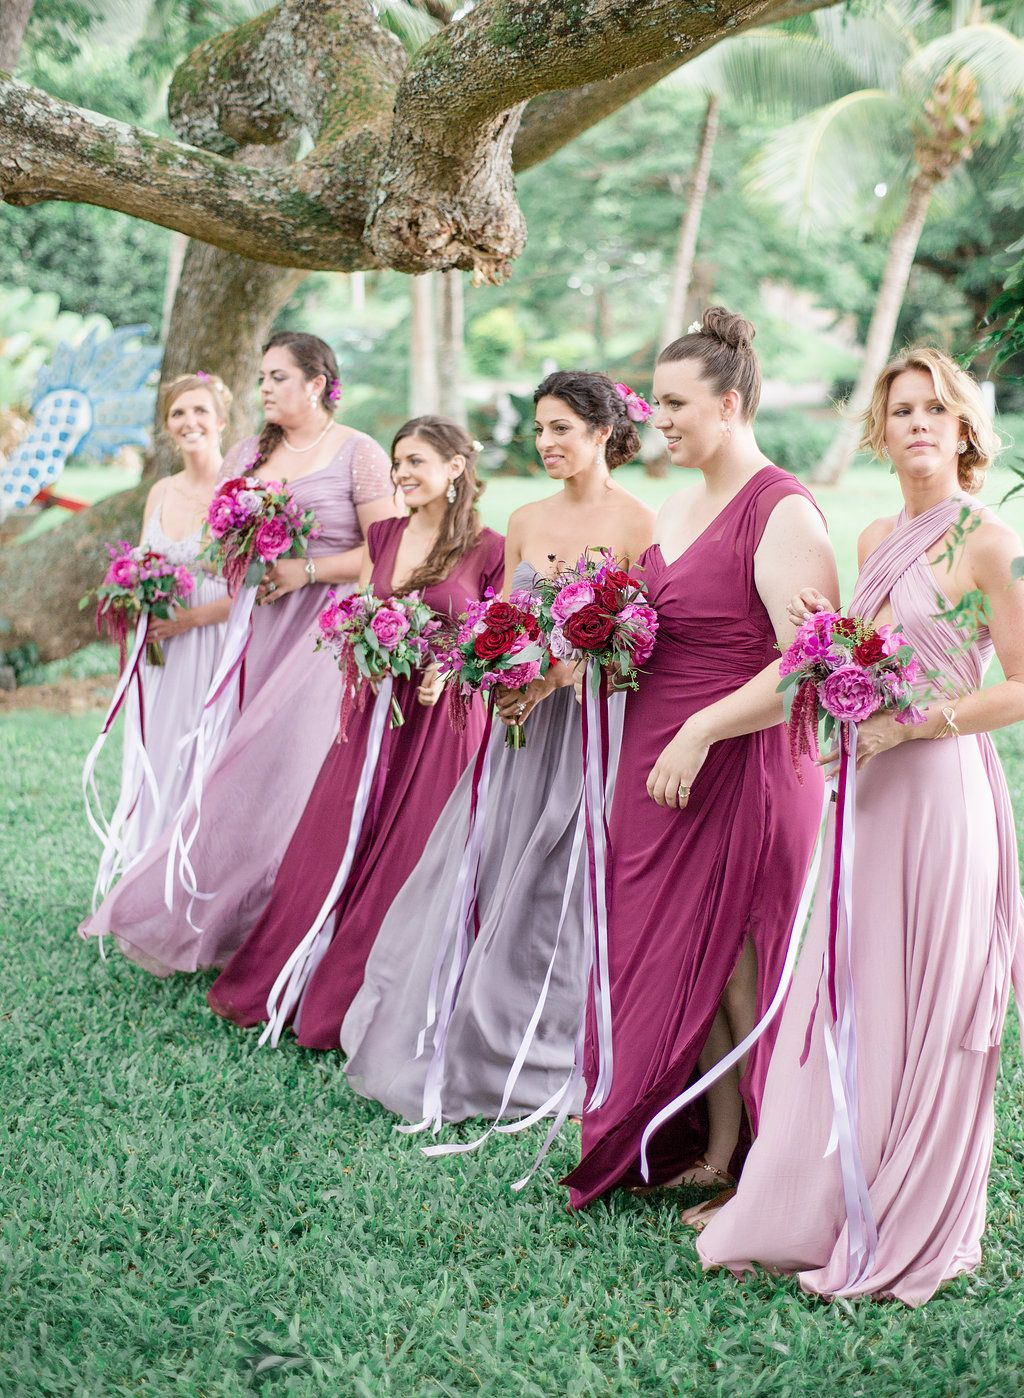 Mismatched bridesmaids dresses in oahu hawaii wedding party mismatched bridesmaids dresses in oahu hawaii ombrellifo Choice Image